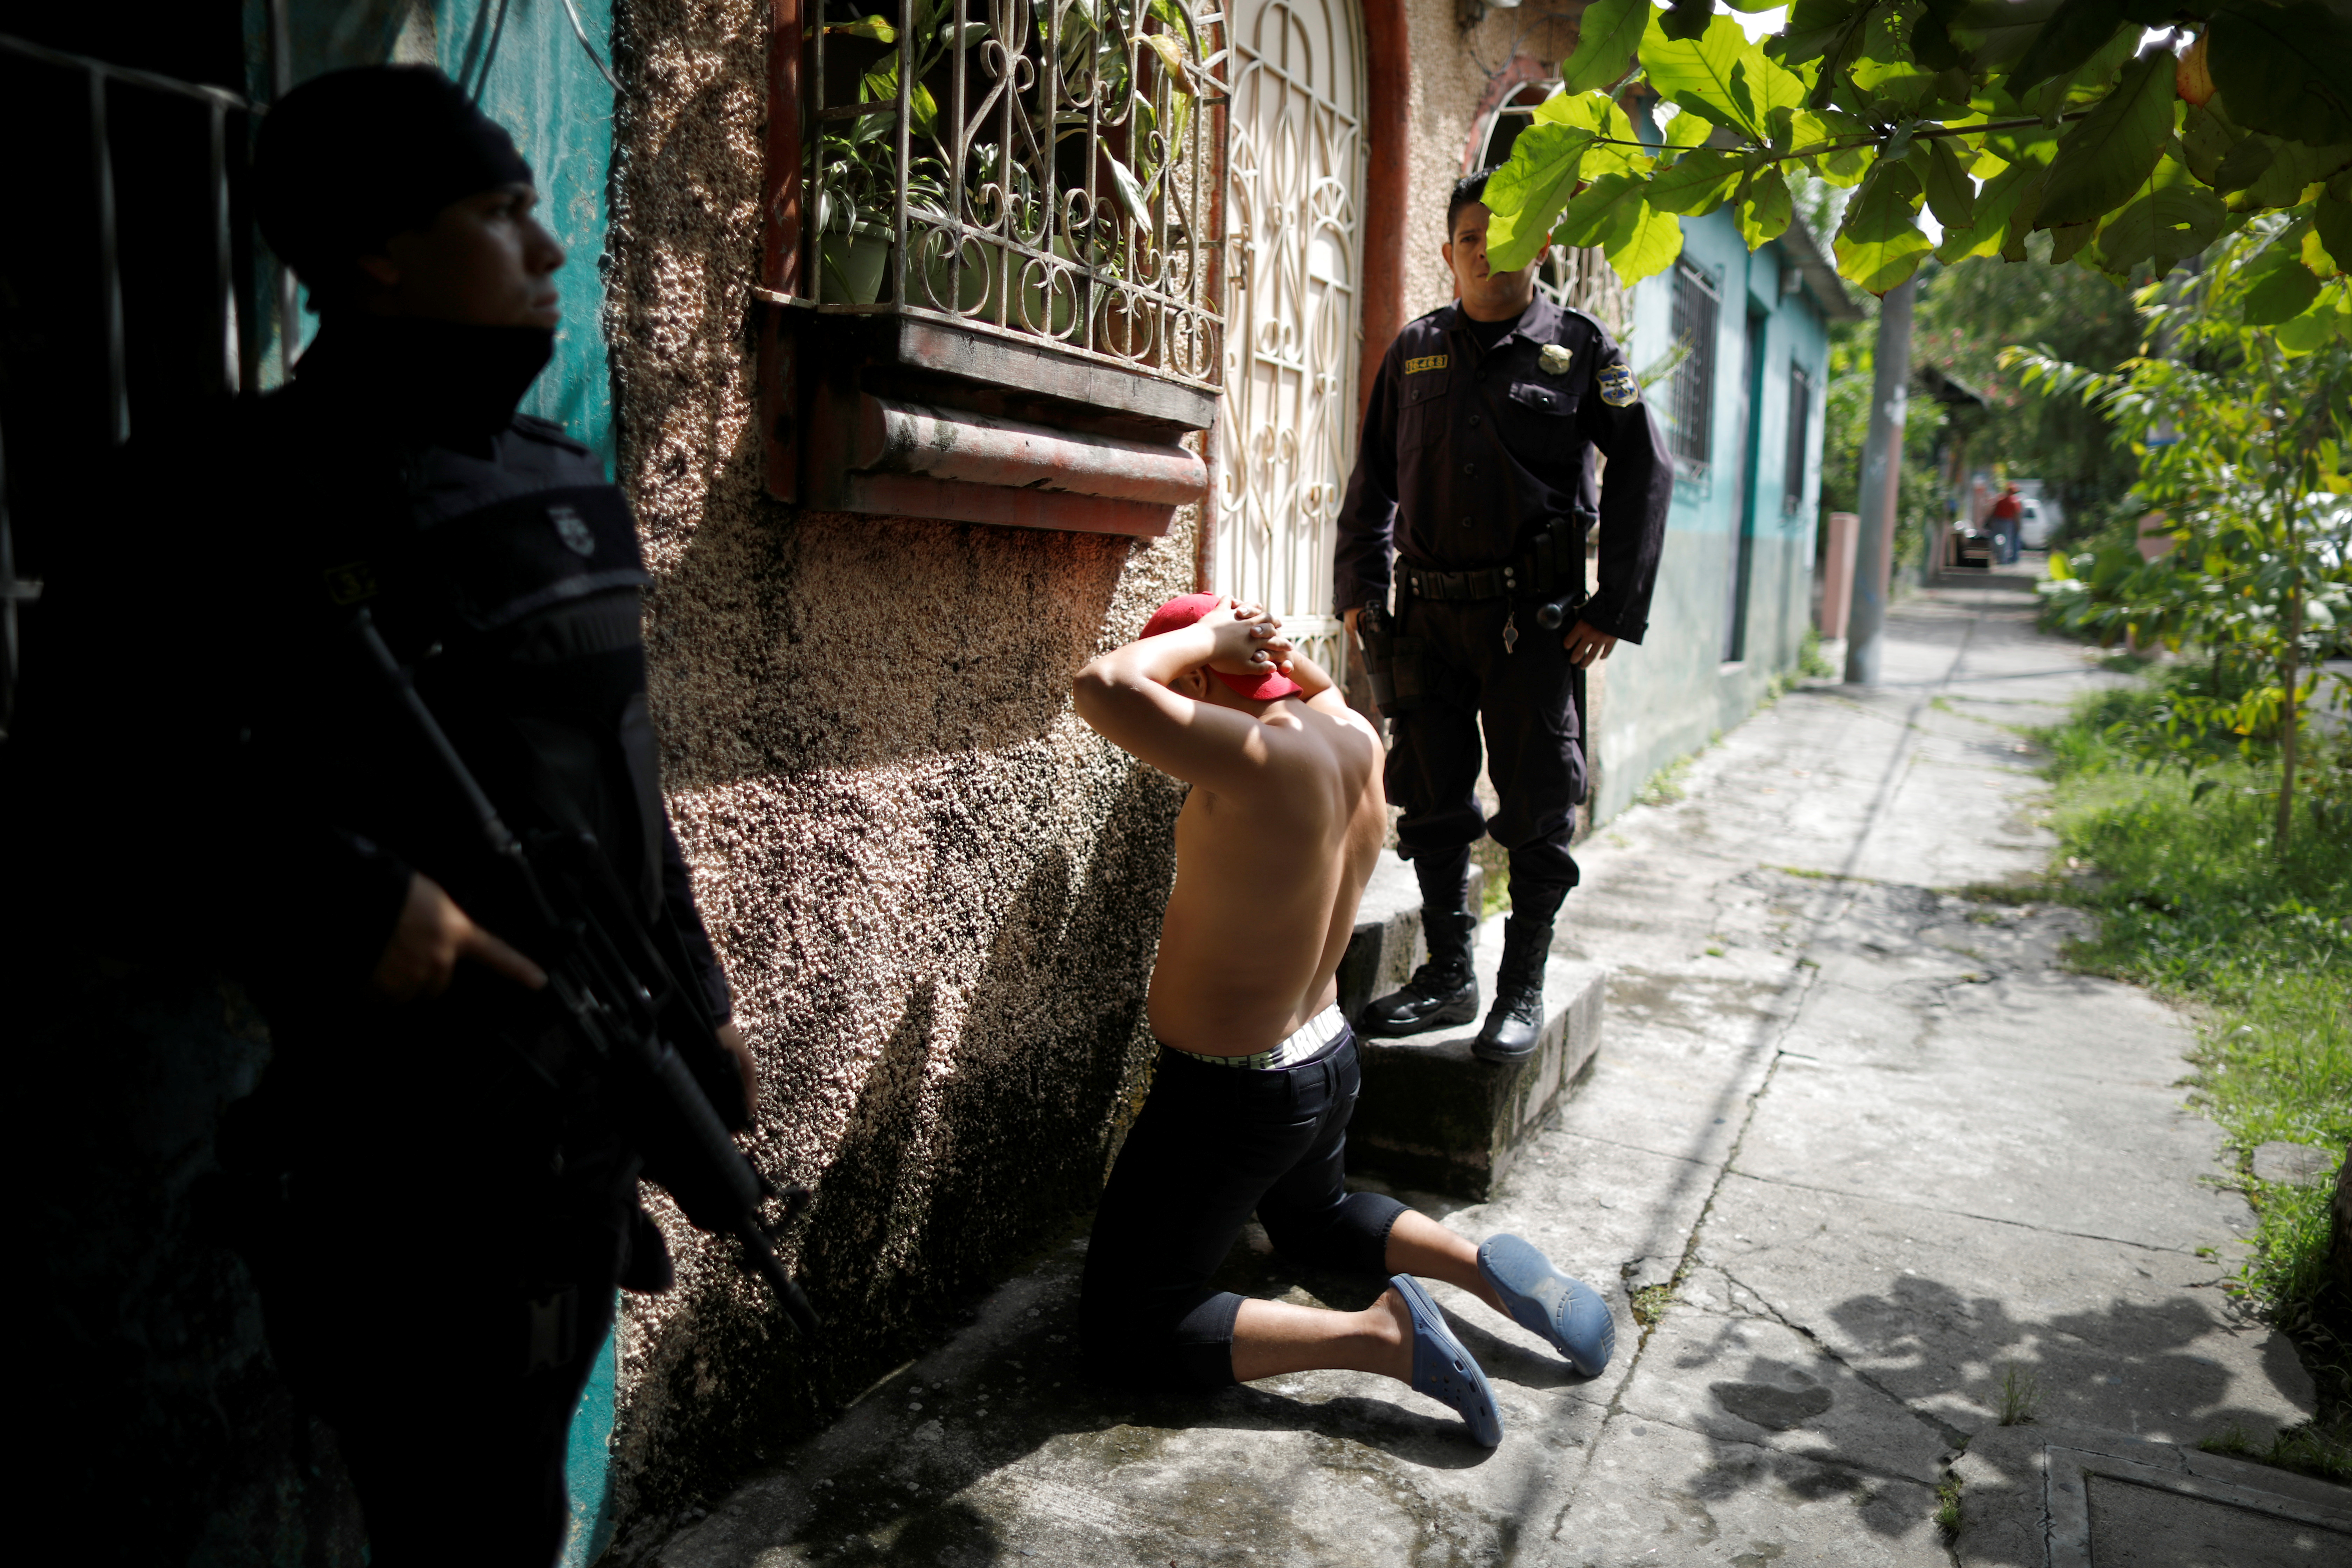 Police officers stand by a suspect outside a seized MS-13 gang usurped house during a